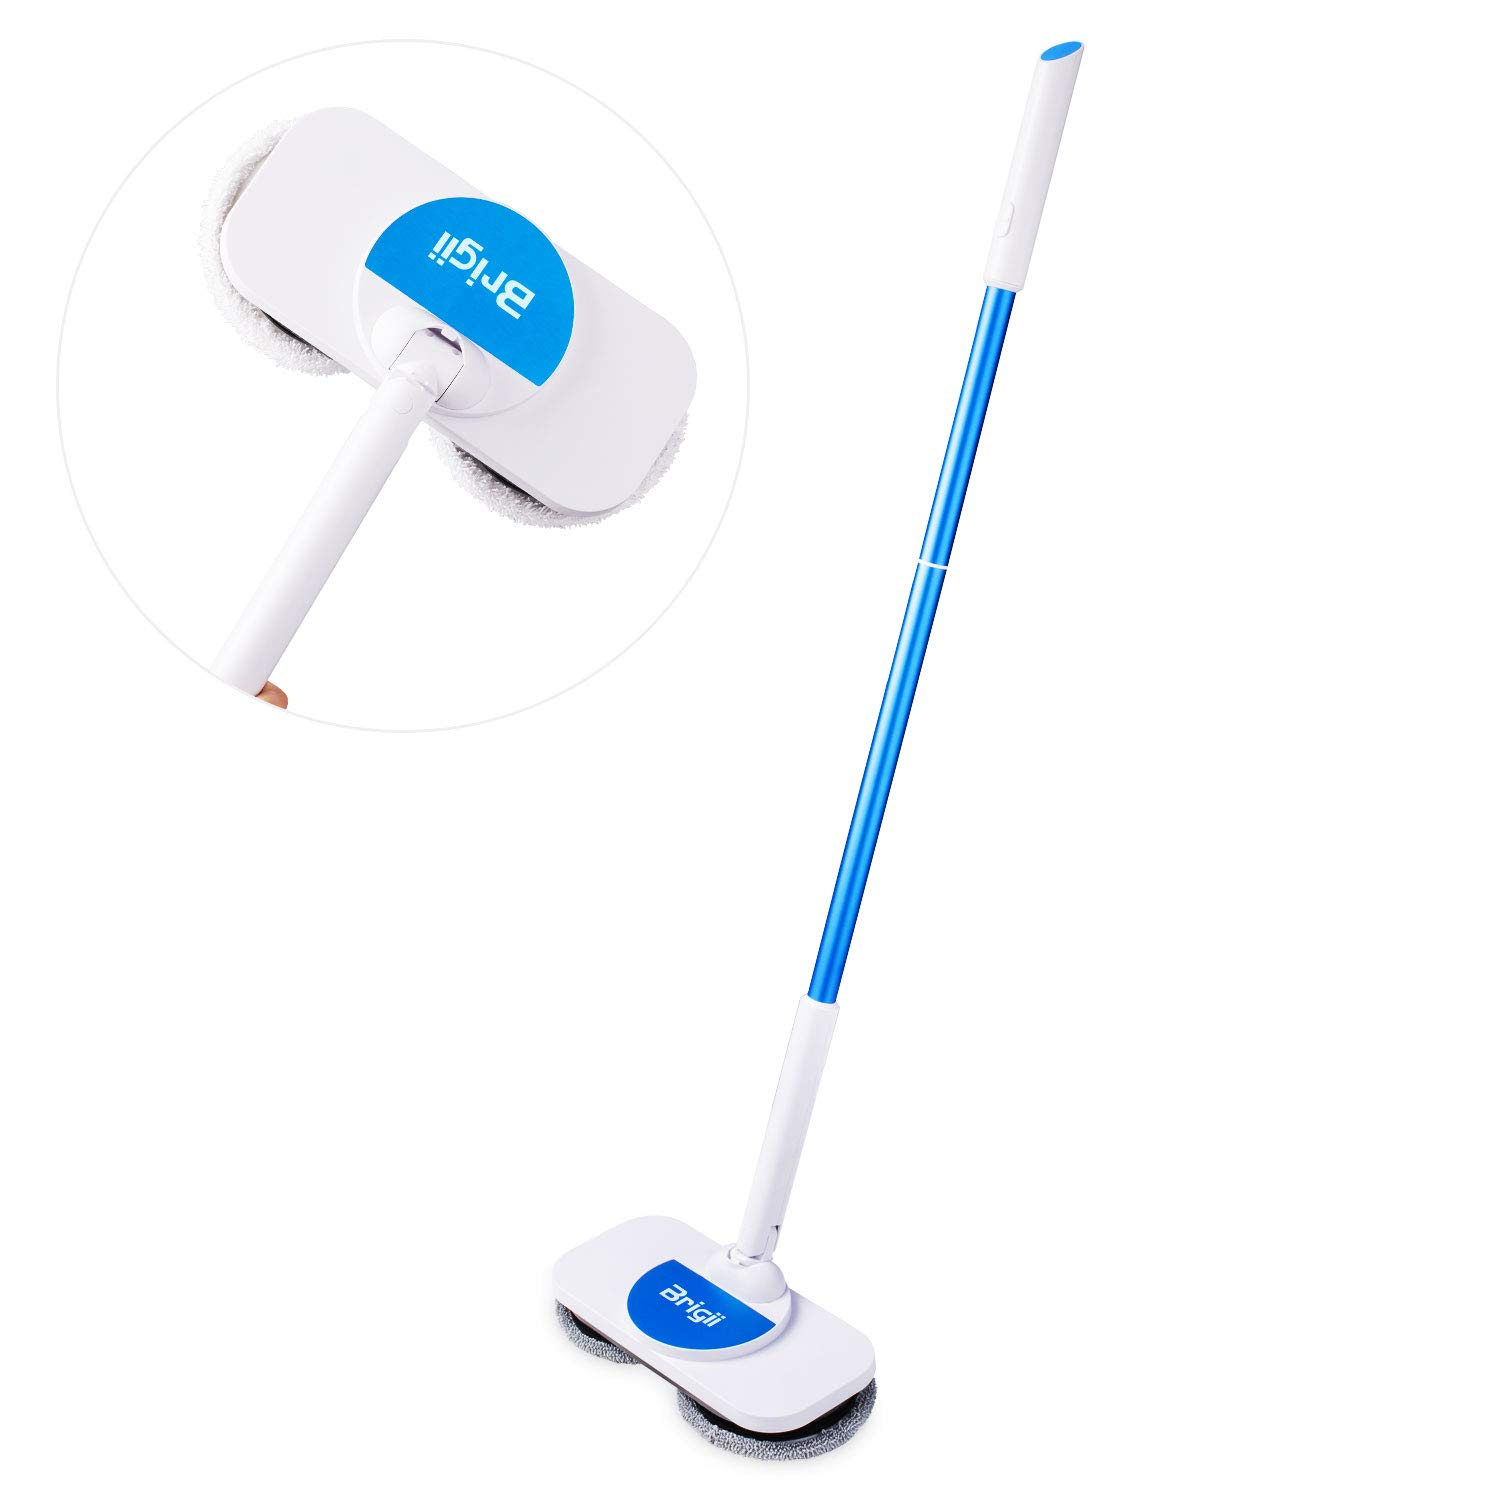 Brigii Electric Mop and Window Cleaner in One, 360 Rotation Cordless Mop for Hardwood,Vinyl,Tile,Laminate Floor Cleaning,Ligthweight Power Floor Polisher with Microfiber Cleaning Pads-X180 Blue